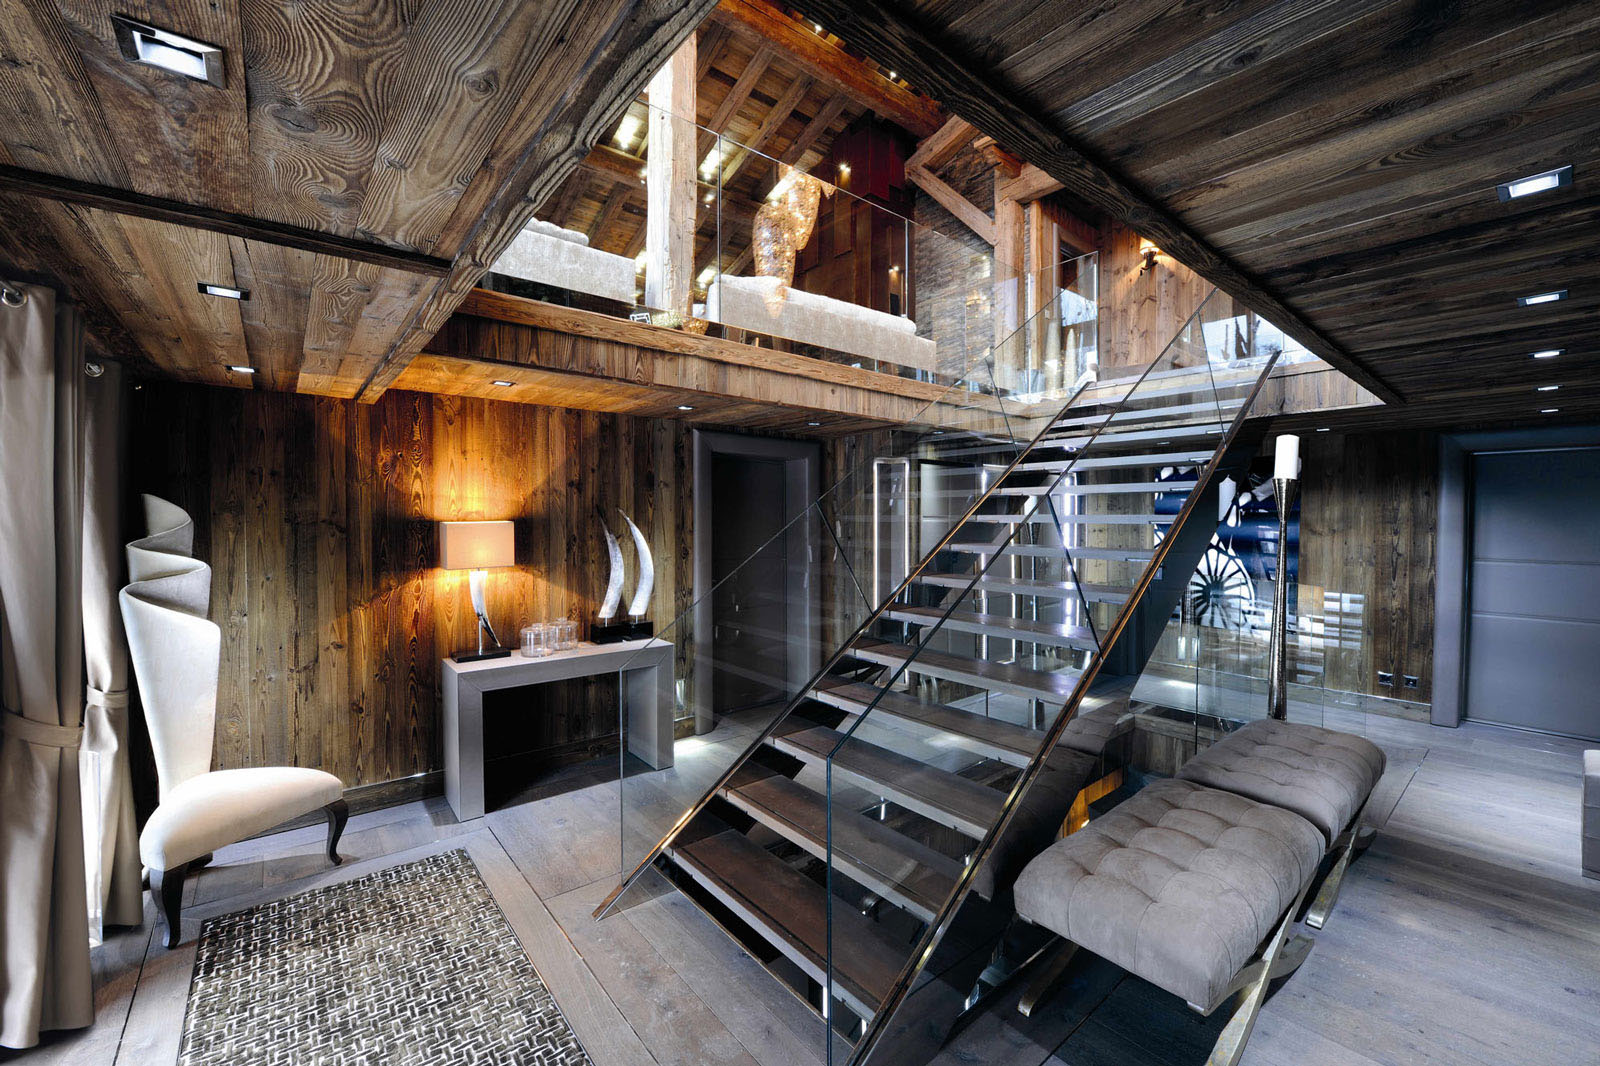 Luxury chalet in the french alps